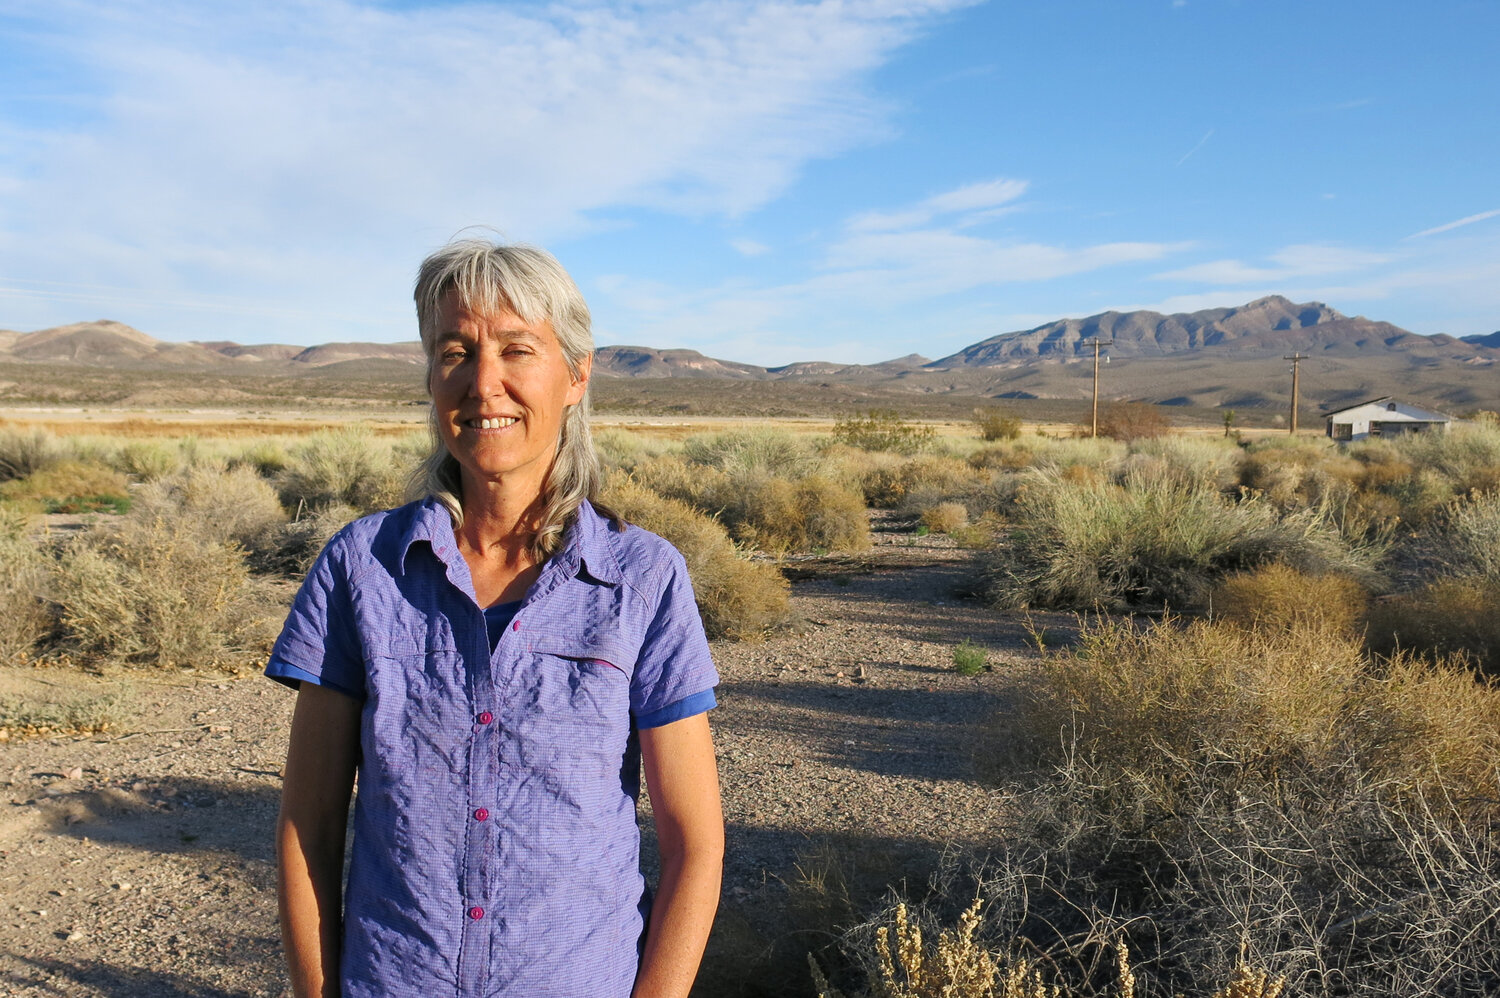 Laura Cunningham, co-founder and executive director of Basin and Range Watch stands near her home in Nevada. Her group has taken legal action against the U.S. Bureau of Land Management to learn more details about the number of bird deaths associated with Crescent Dunes Solar Energy Plant.